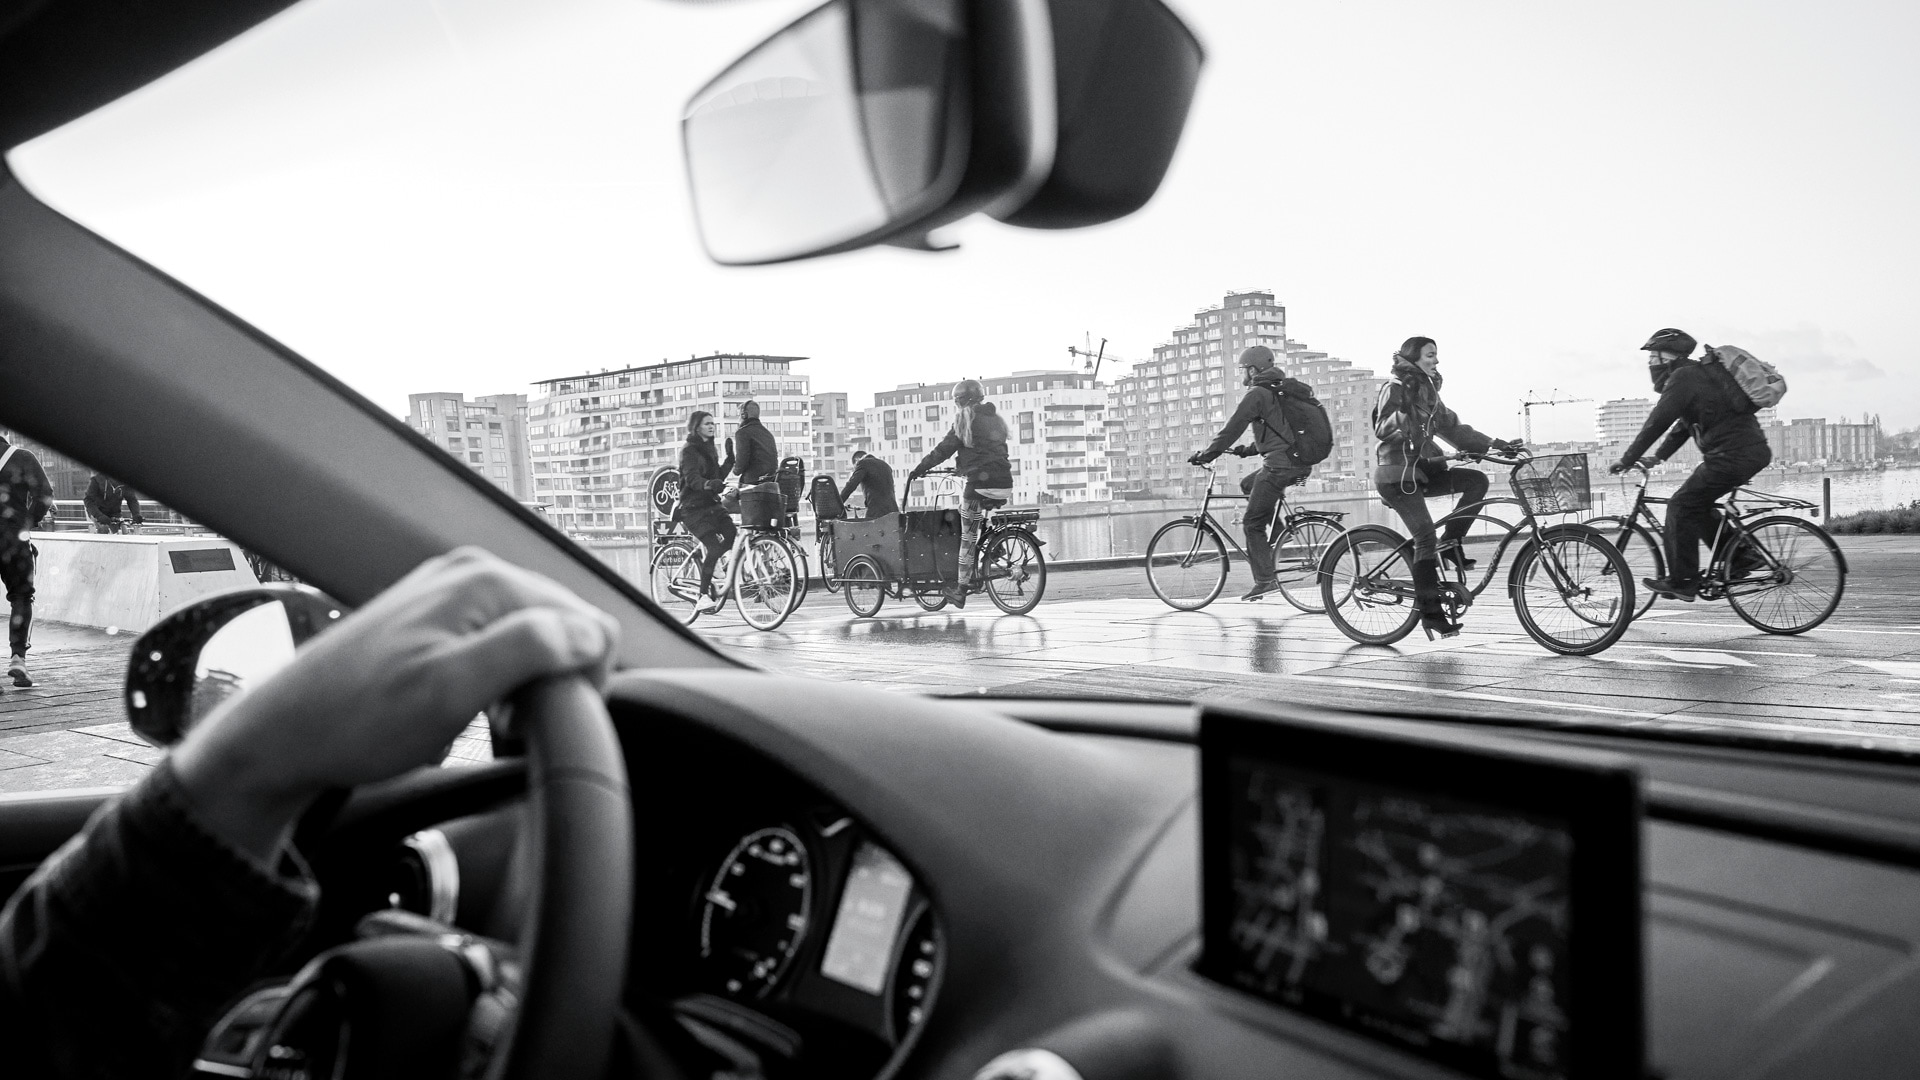 Cyclists from the view in the car